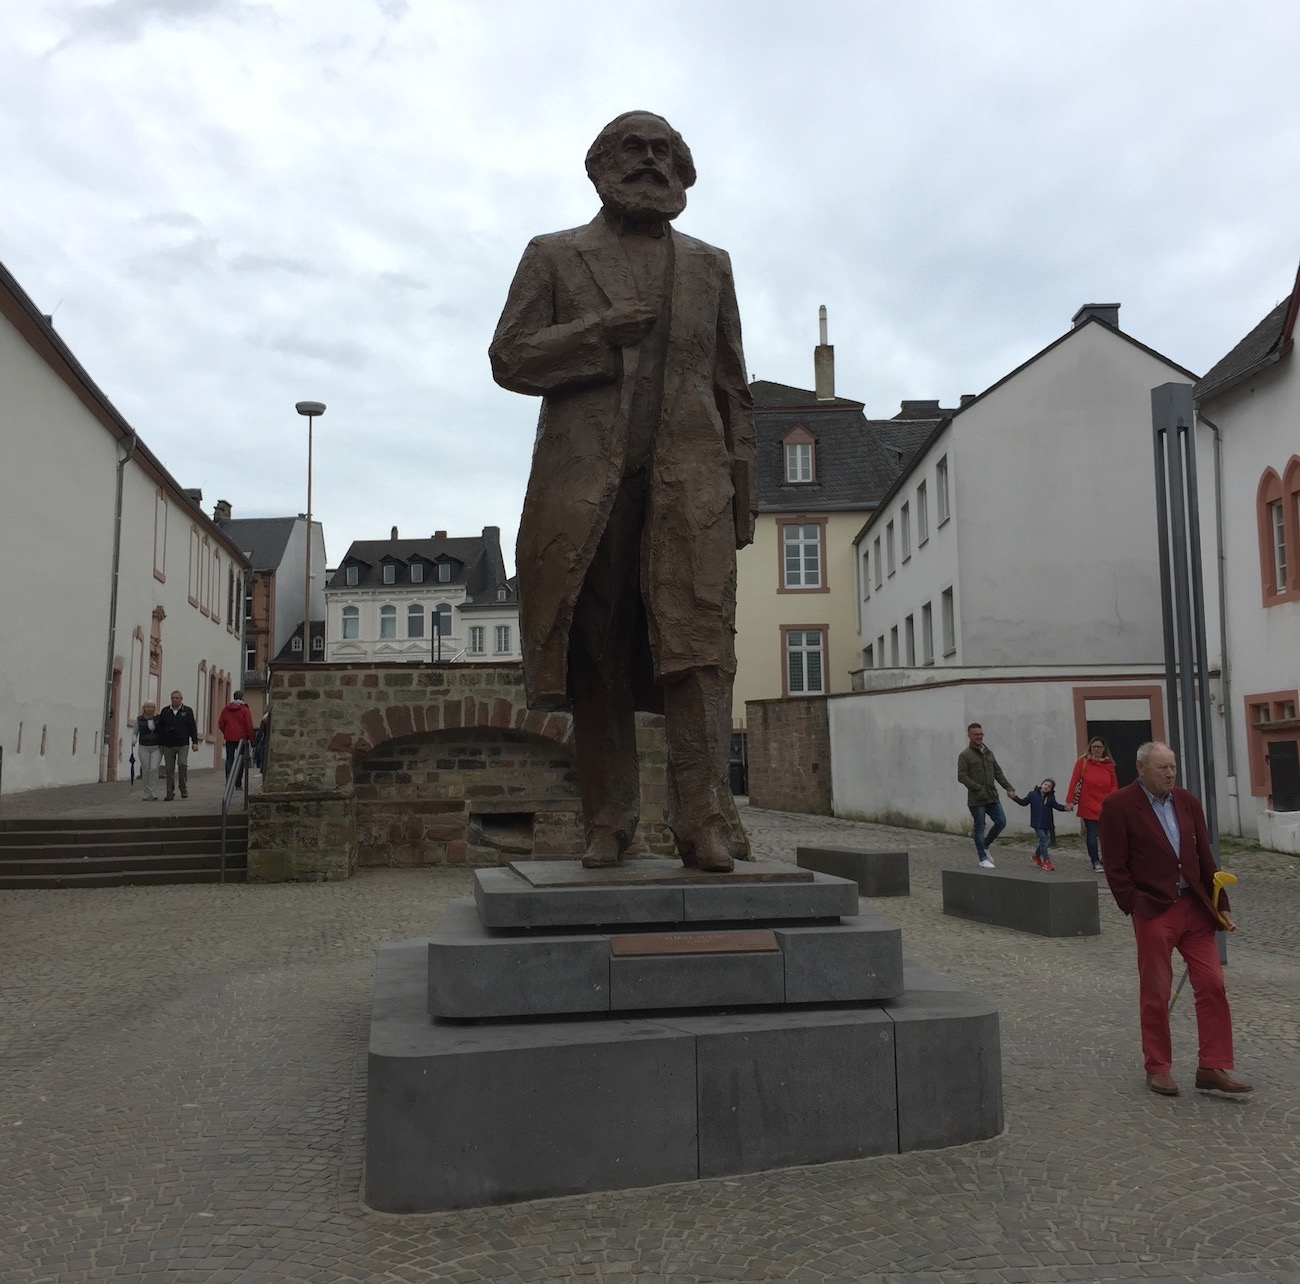 The statue of Karl Marx